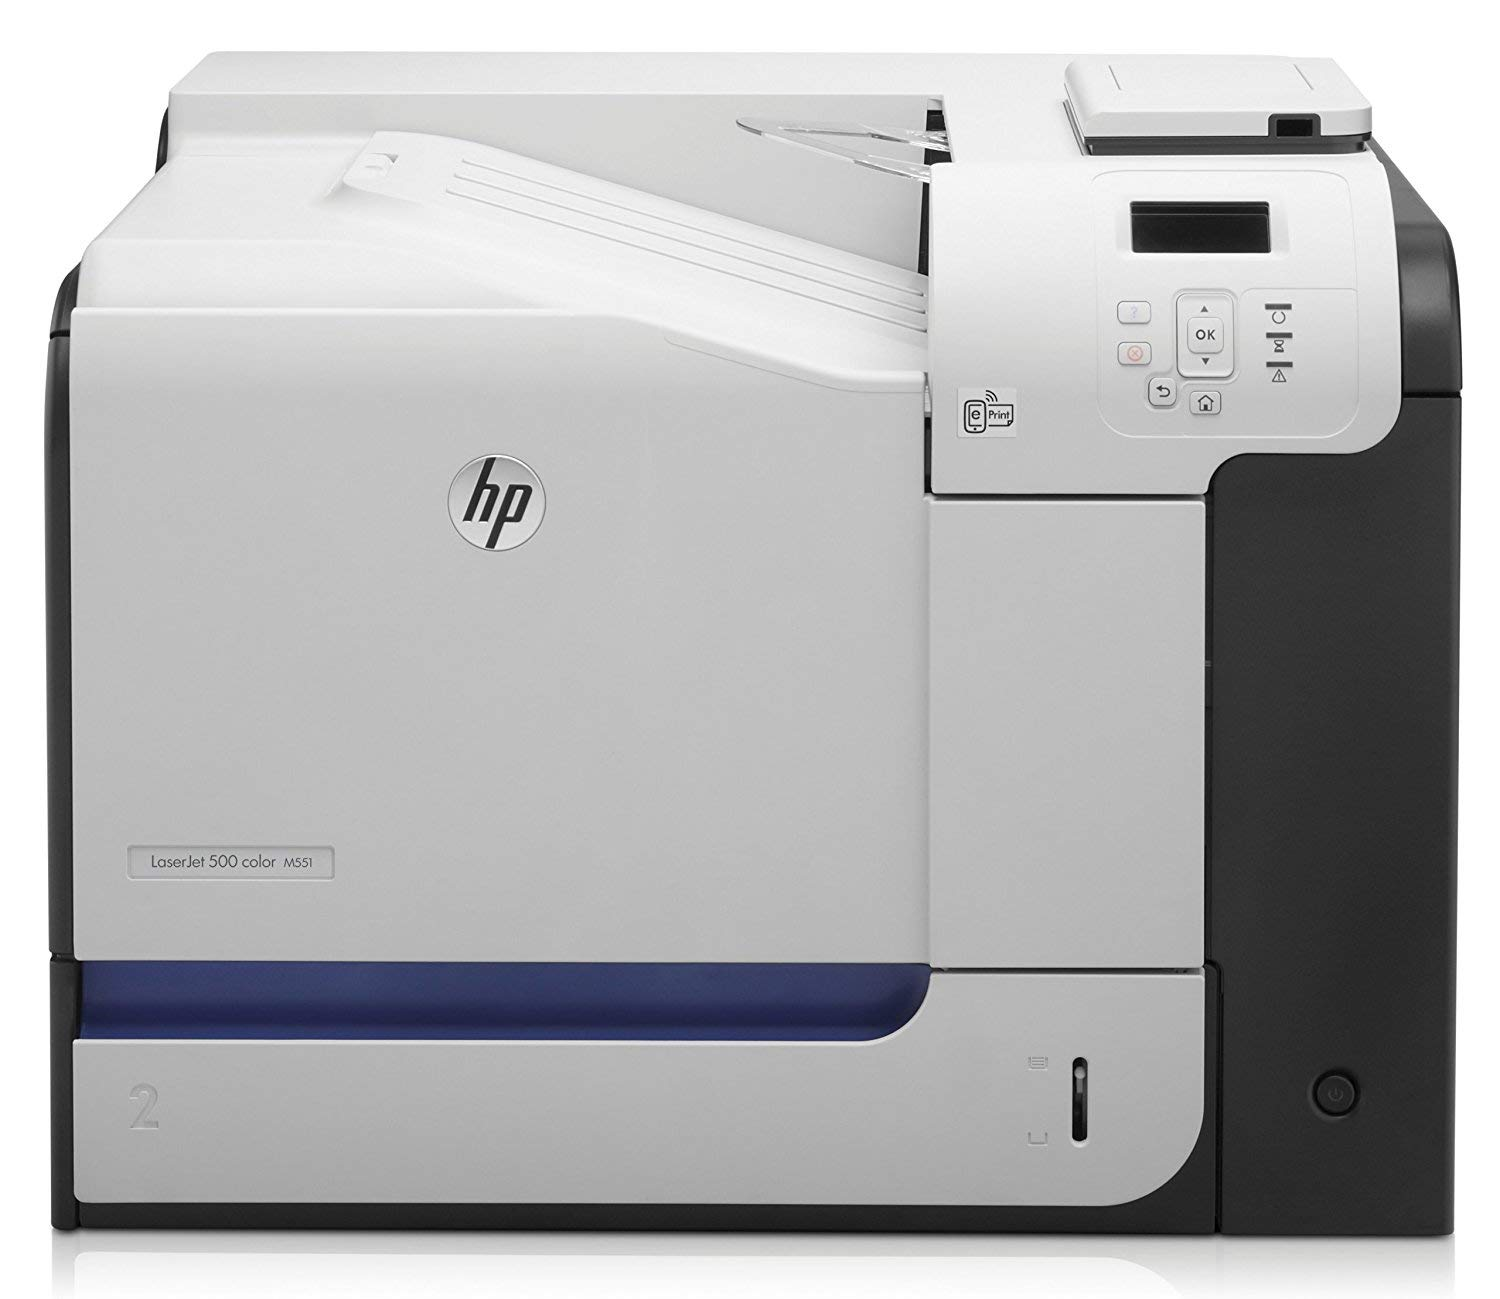 HP Laserjet Enterprise M551dn 500 (CF082A) Color M551dn (CF082A) [並行輸入品] 500 B07GJ9XPPM, ムツミ村:e74a5ed4 --- fancycertifieds.xyz